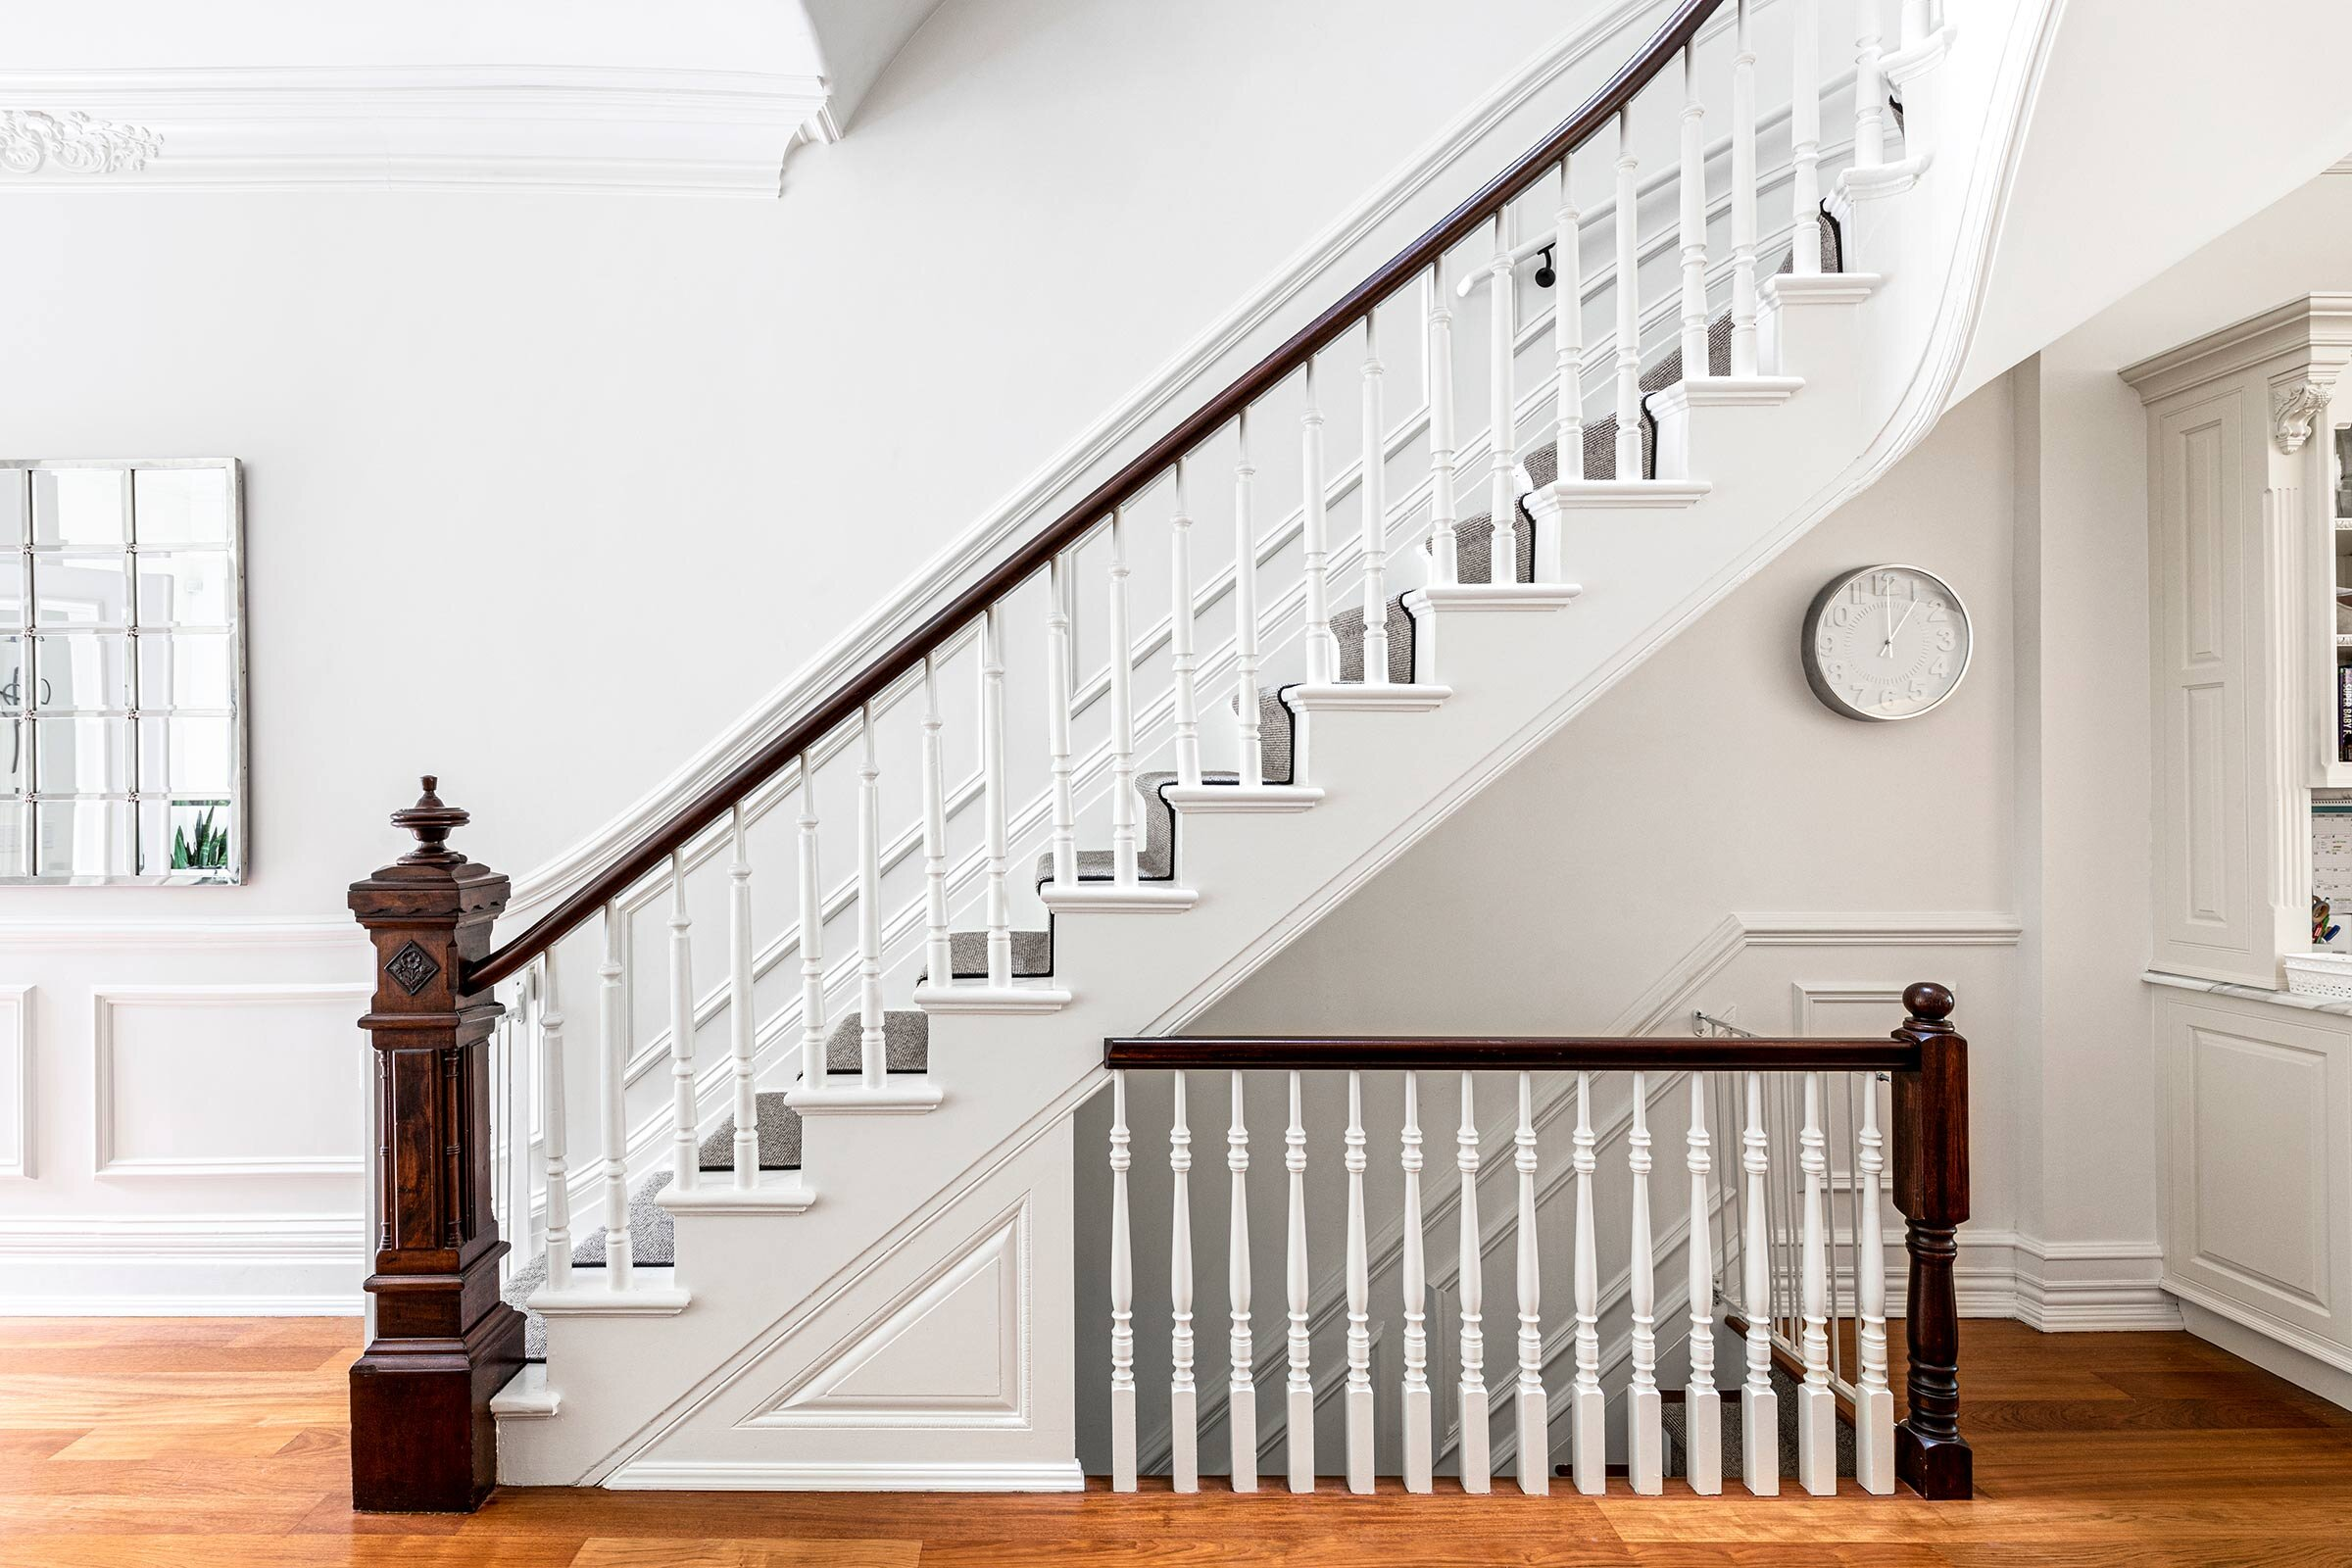 thompson-home-renovations-contractor-home-staircase-stairs-townhouse.jpg